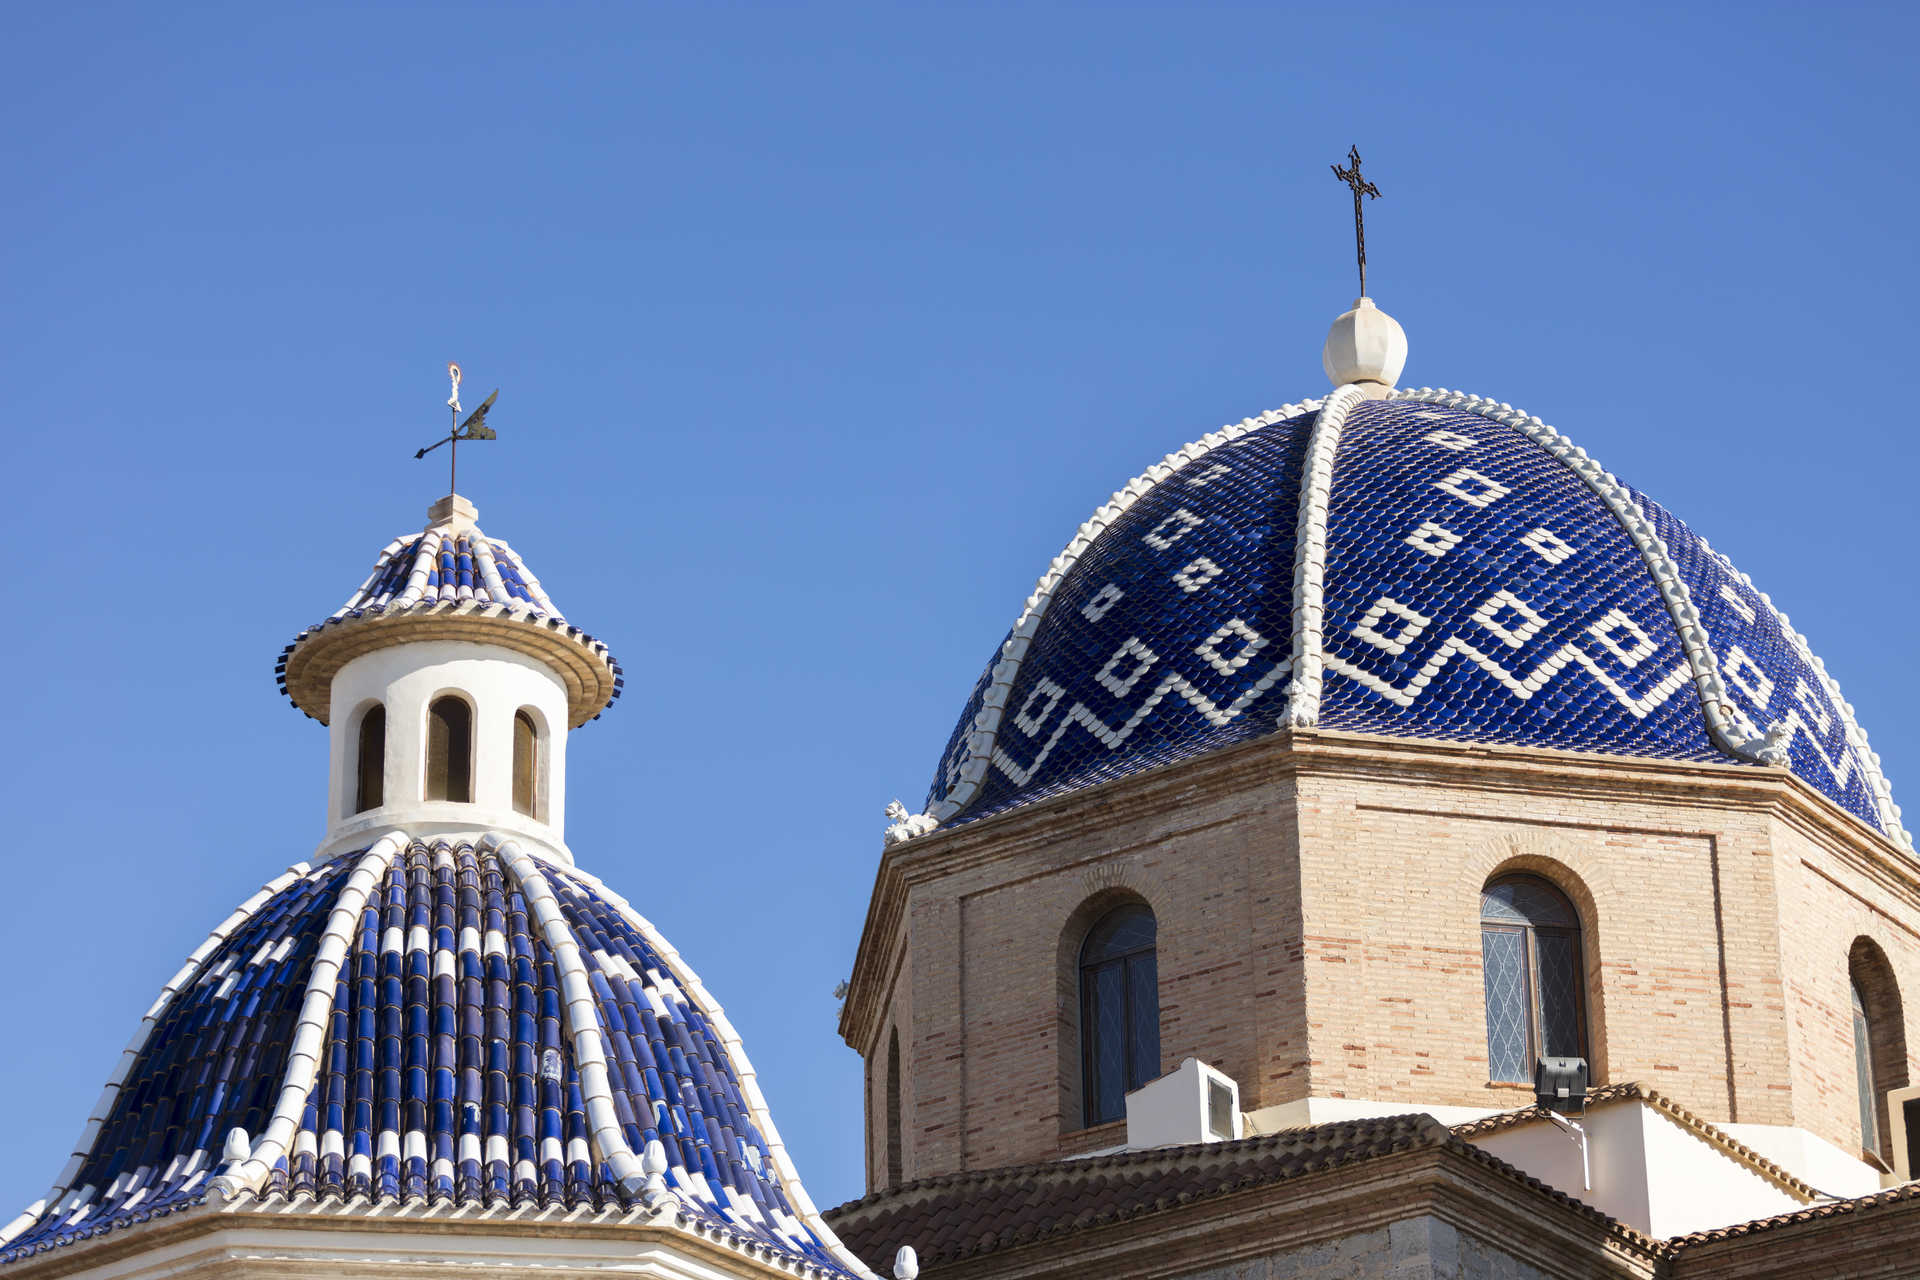 Guided tour of Altea